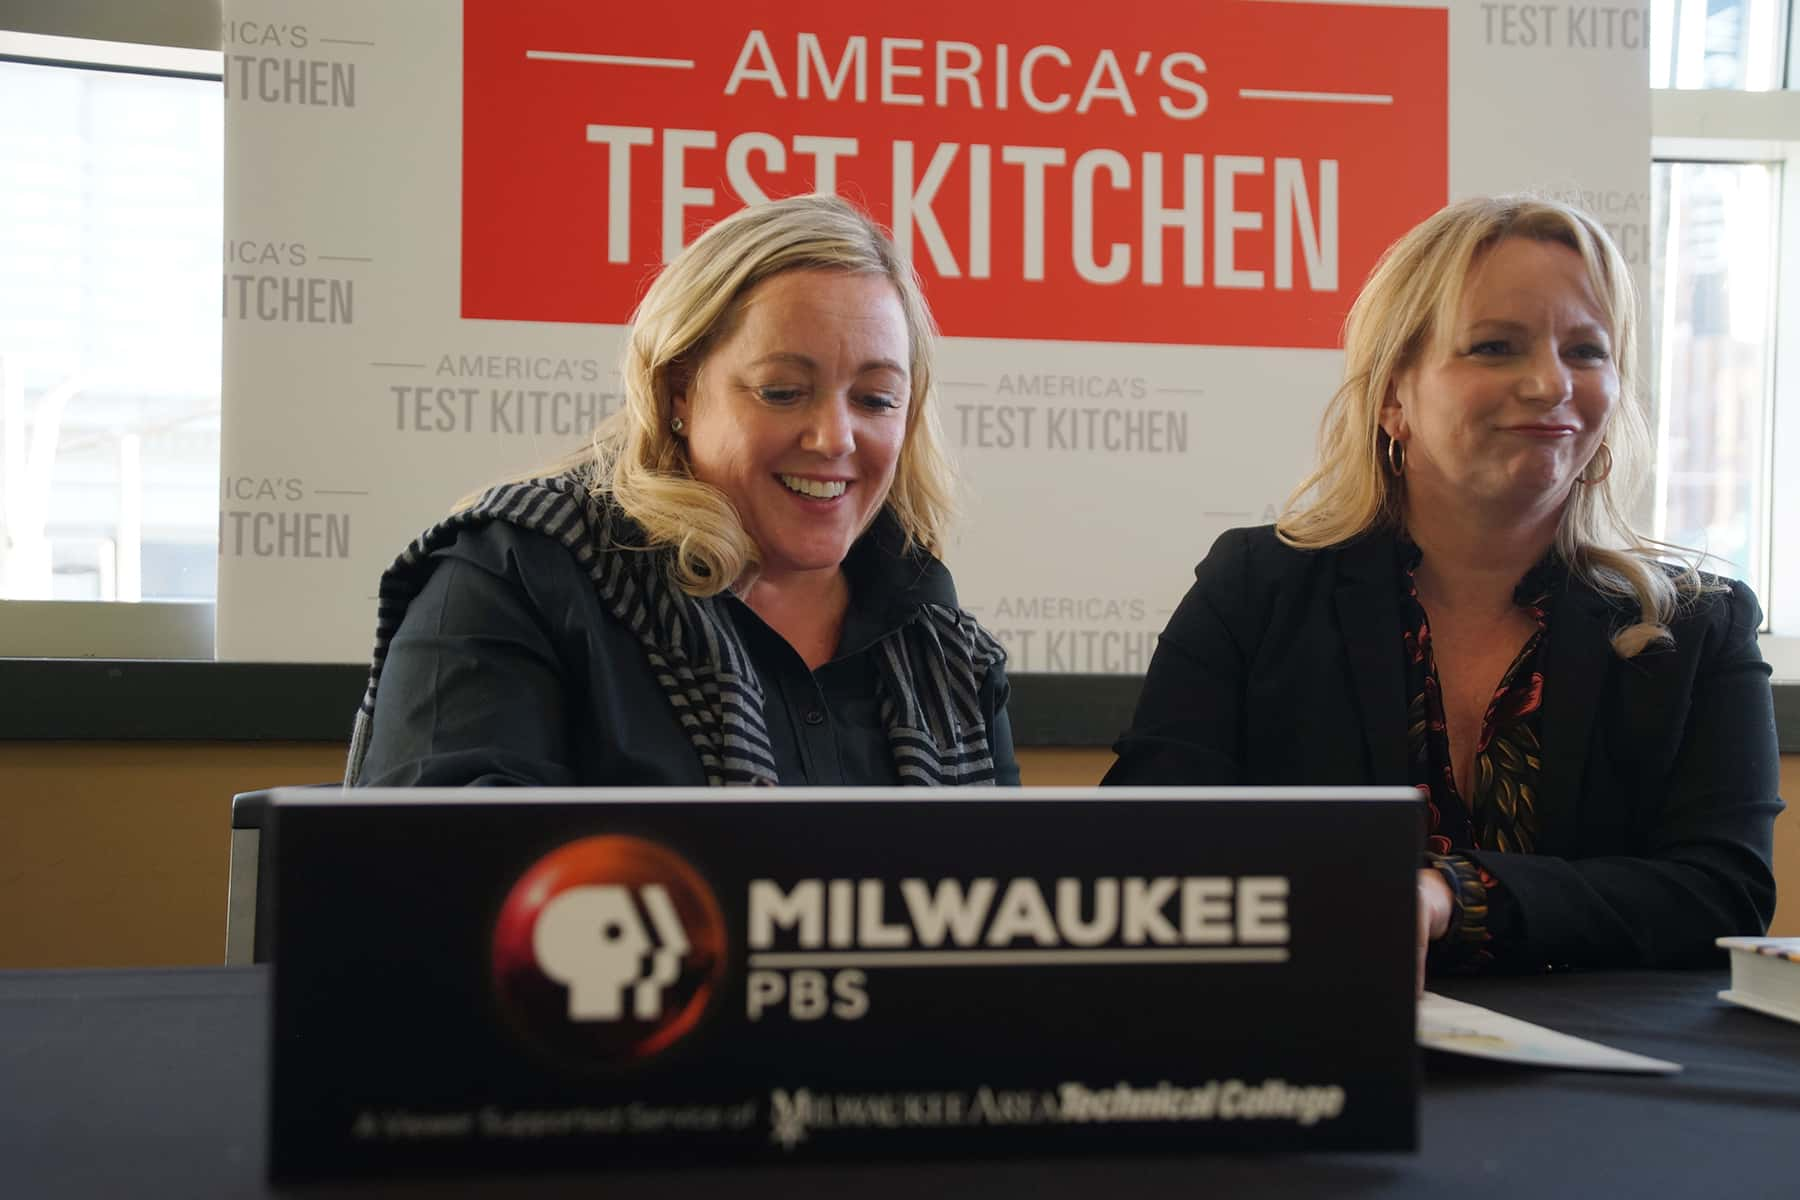 Remarkable Hosts Of Americas Test Kitchen Exchange Recipes With Interior Design Ideas Helimdqseriescom